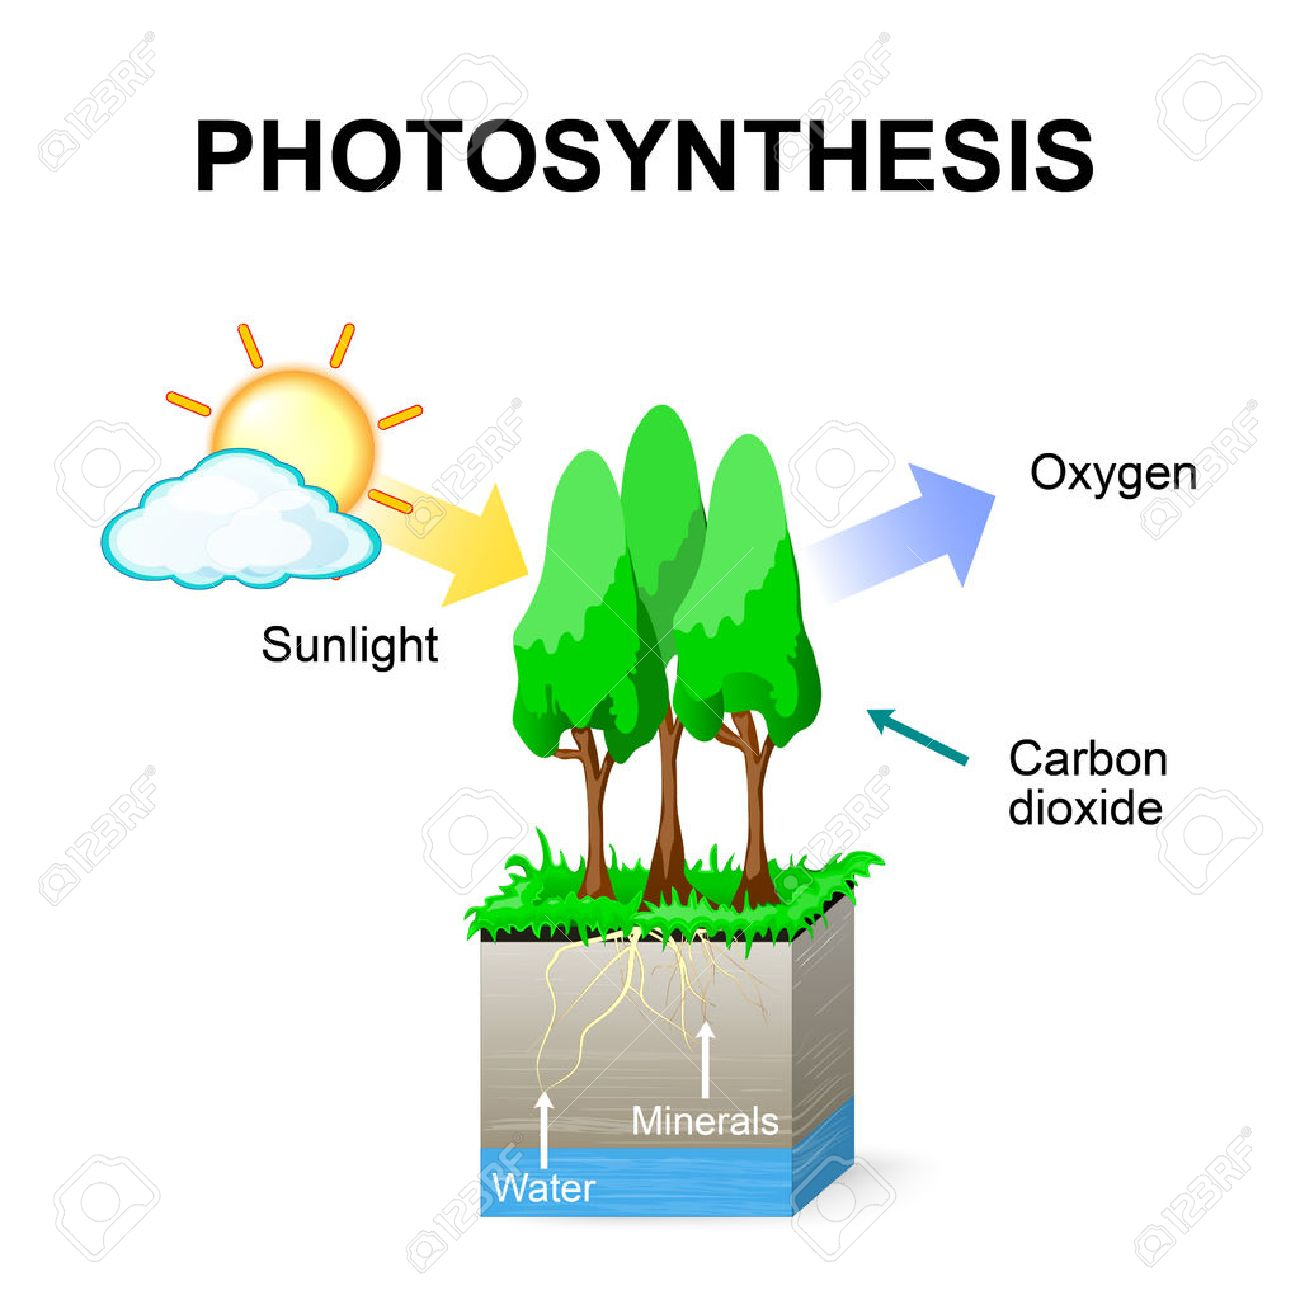 Photosynthesis vector schematic of photosynthesis in plants schematic of photosynthesis in plants stock vector 64914884 ccuart